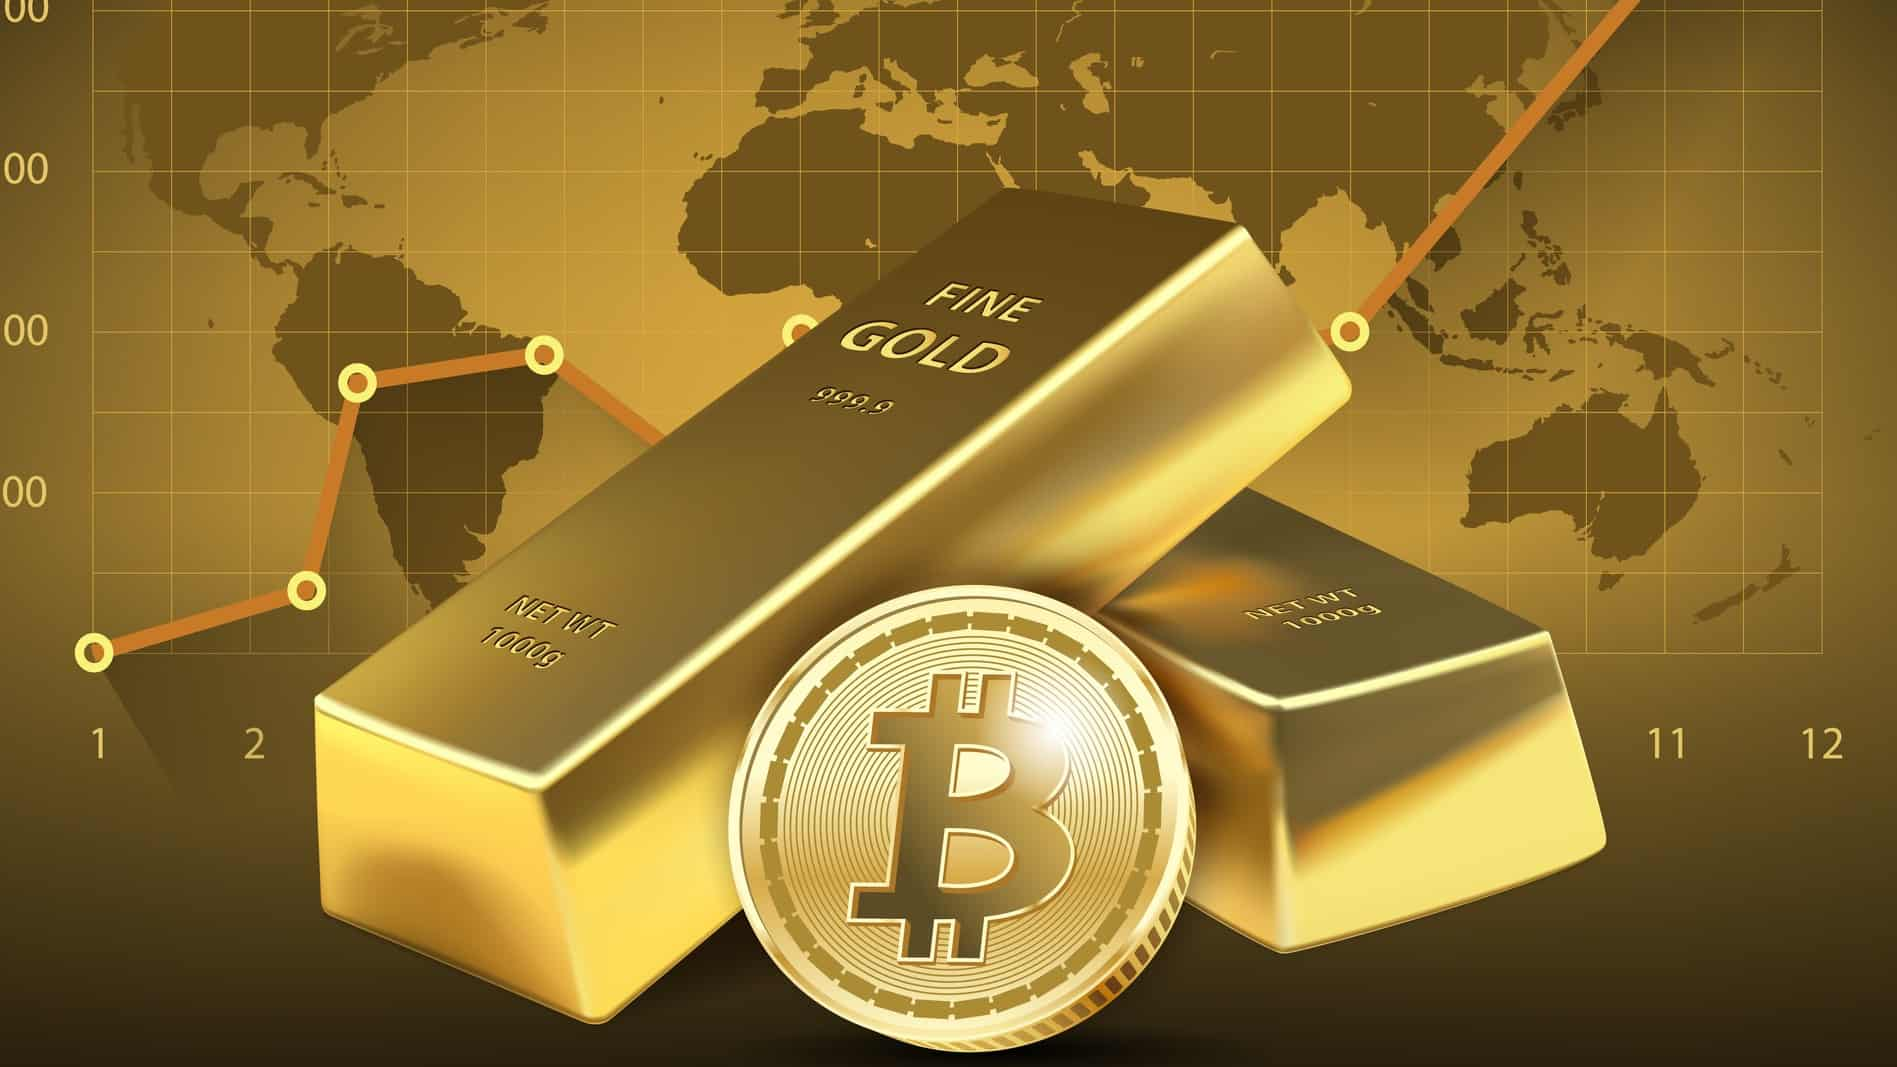 Illustration of gold bullion and bitcoin layered in front of a share price chart